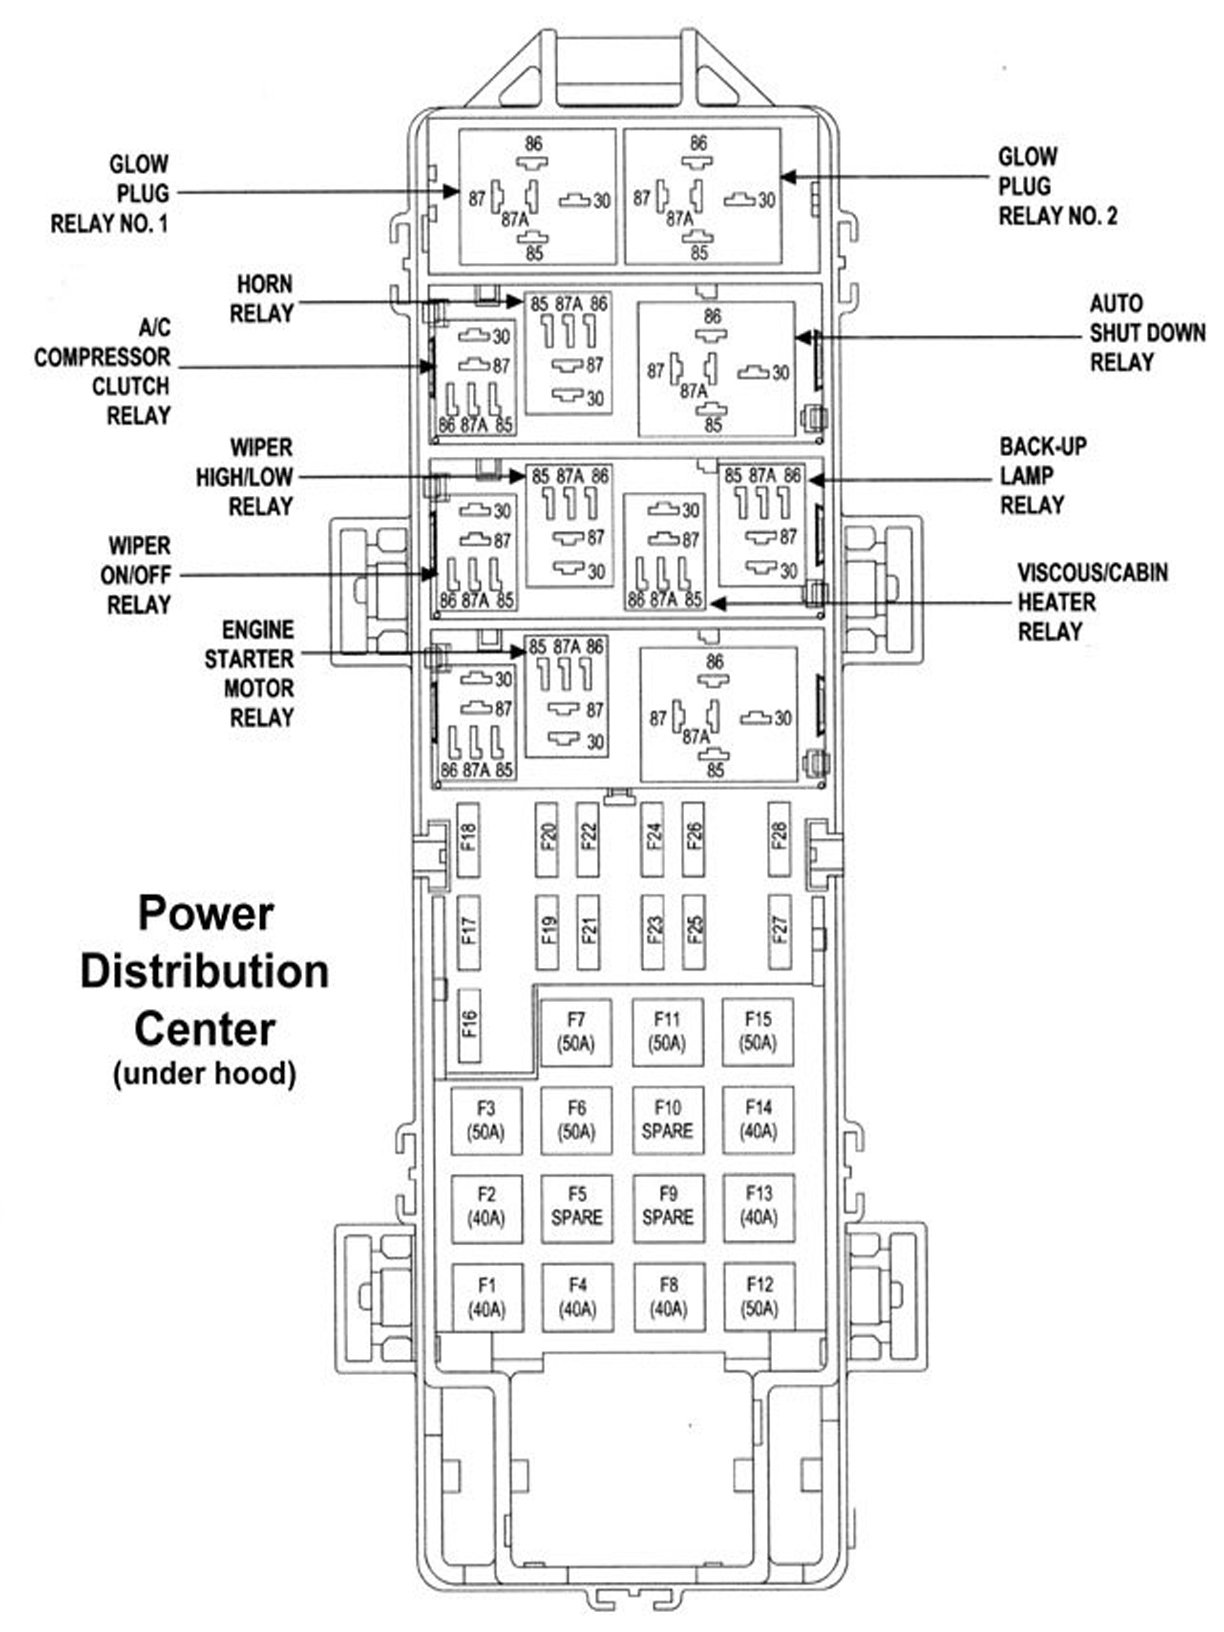 Jeep Grand Cherokee 1999 2004 Fuse Box Diagram 397760 on 1999 jeep grand cherokee fuse box diagram